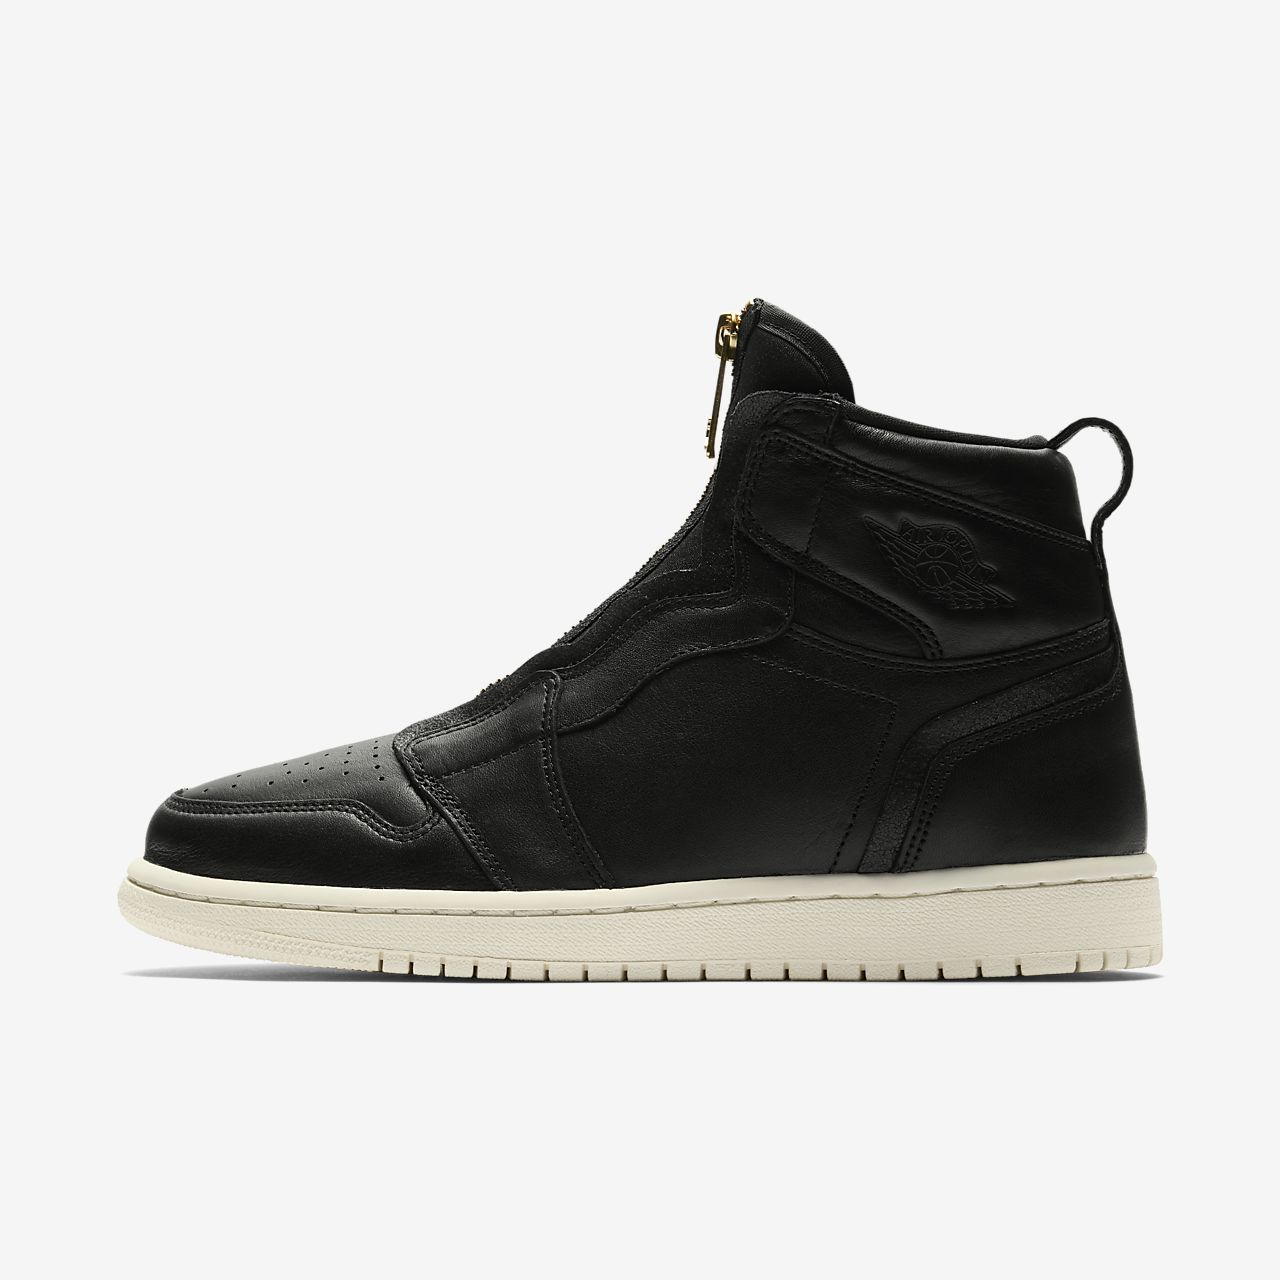 4d5369d1468b2b Air Jordan 1 High Zip Women s Shoe. Nike.com